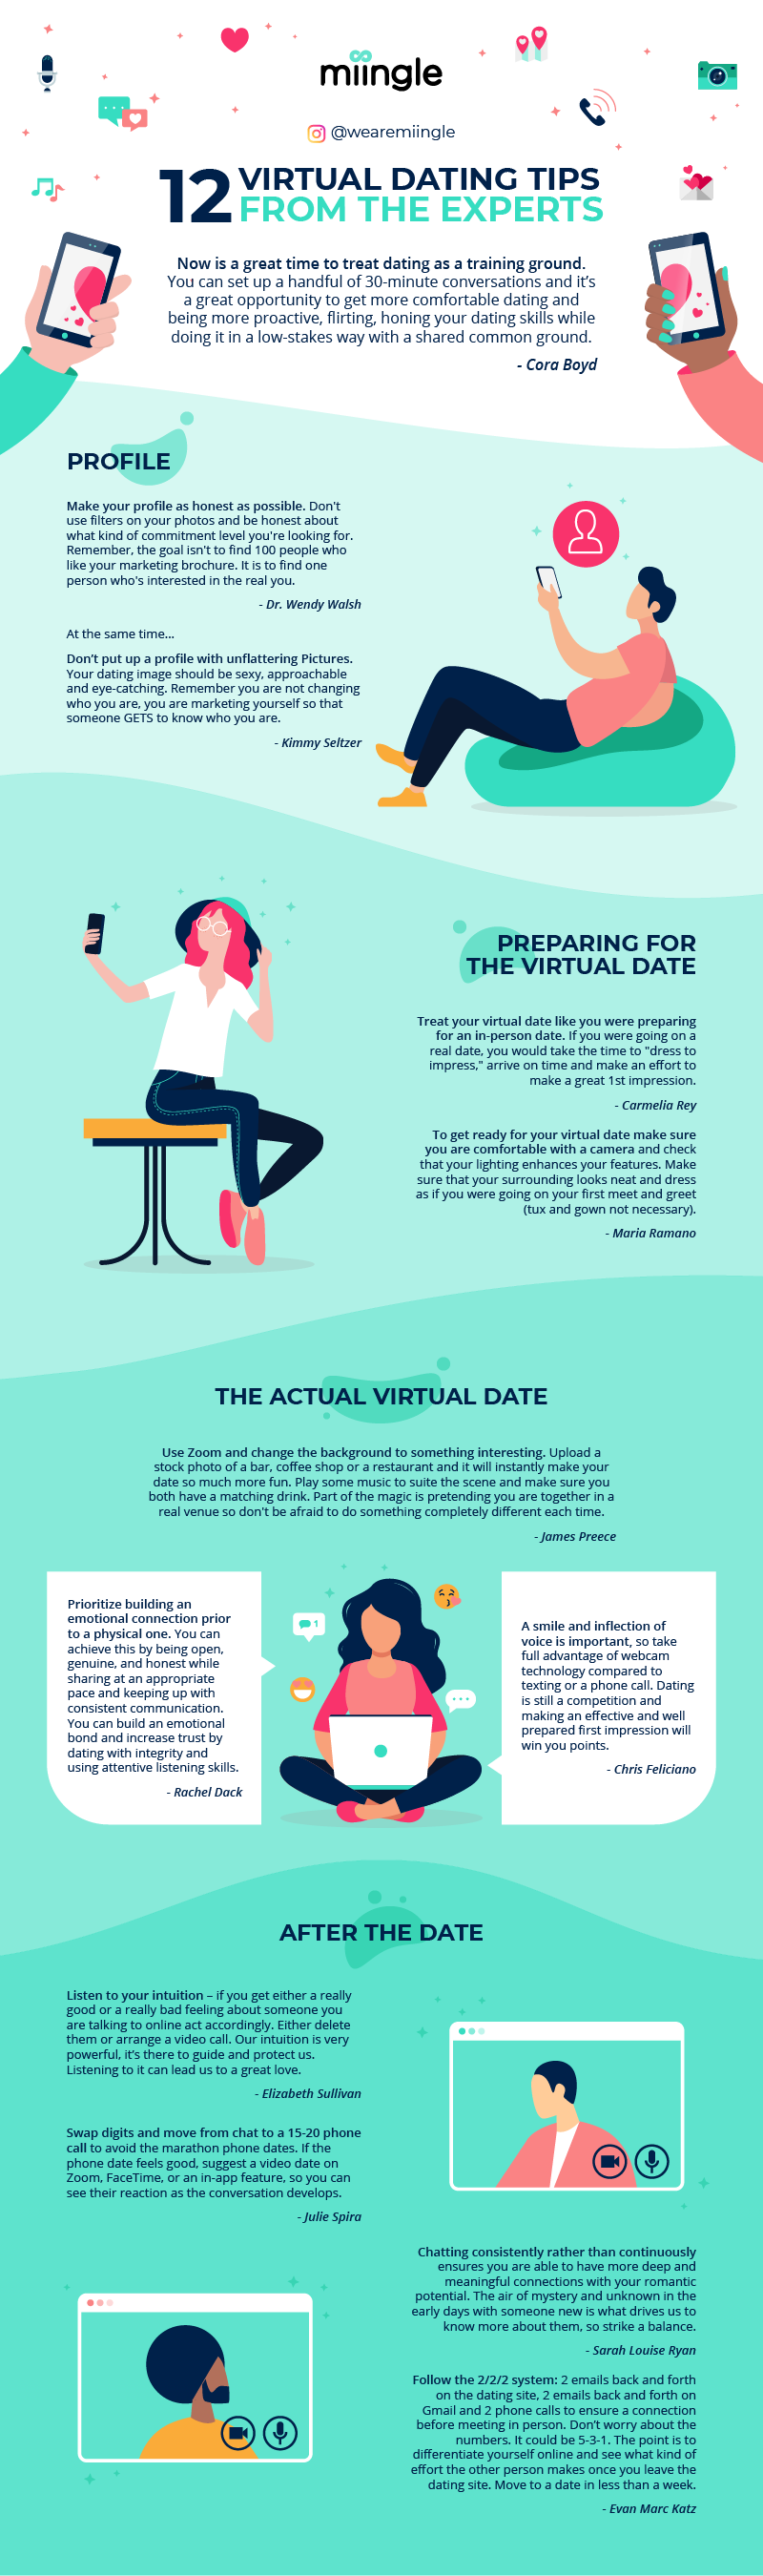 virtual-dating-tips-infographic